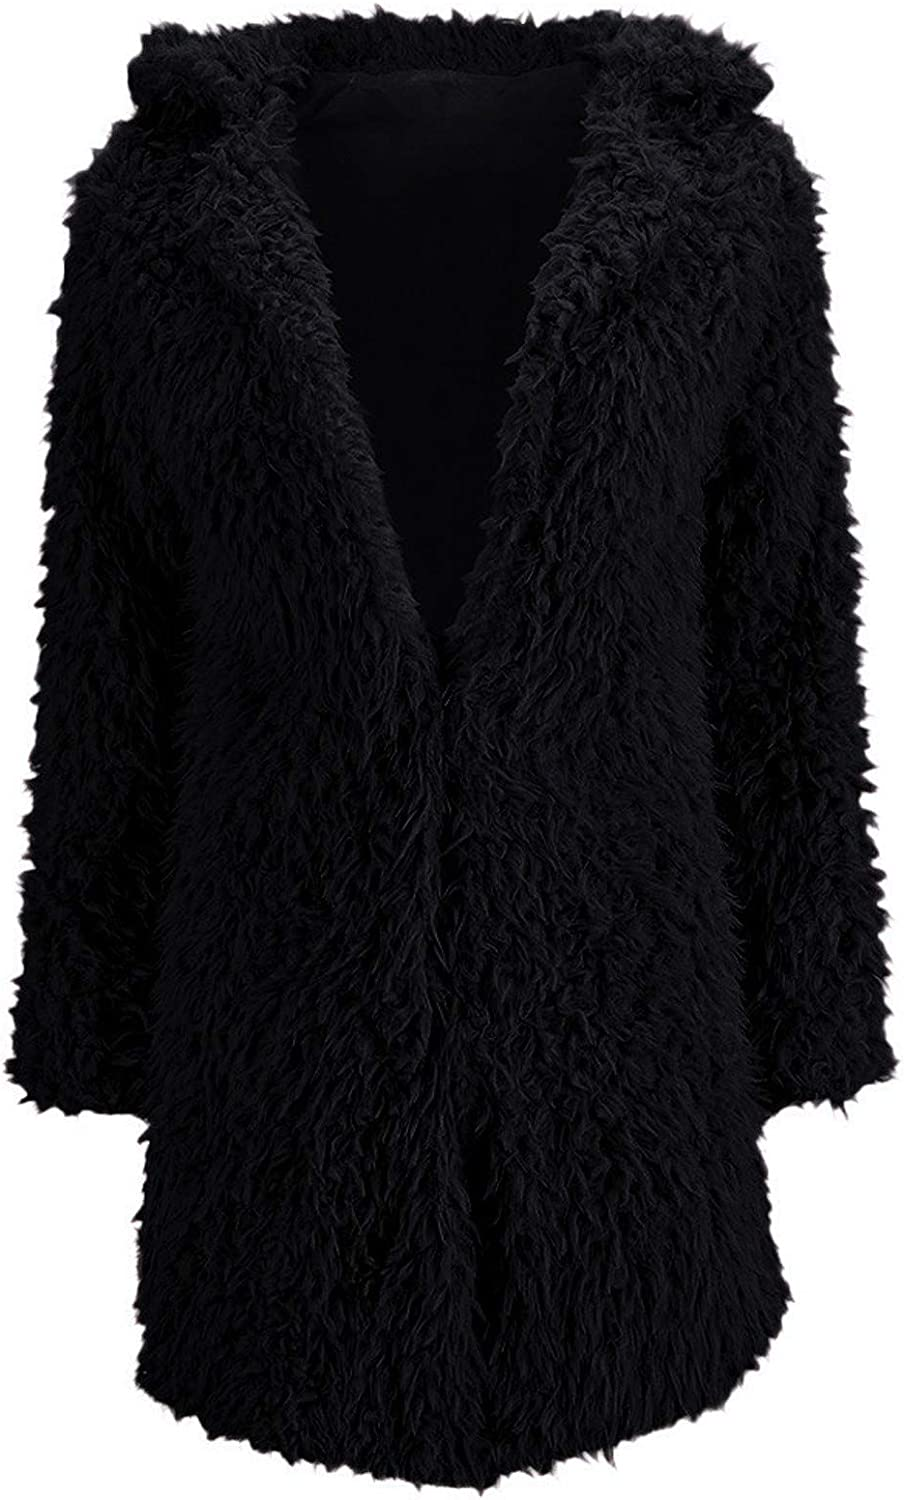 SERYU Womens Warm Faux-Fur Coat Jacket Solid Long Thick Cardigan Outerwear